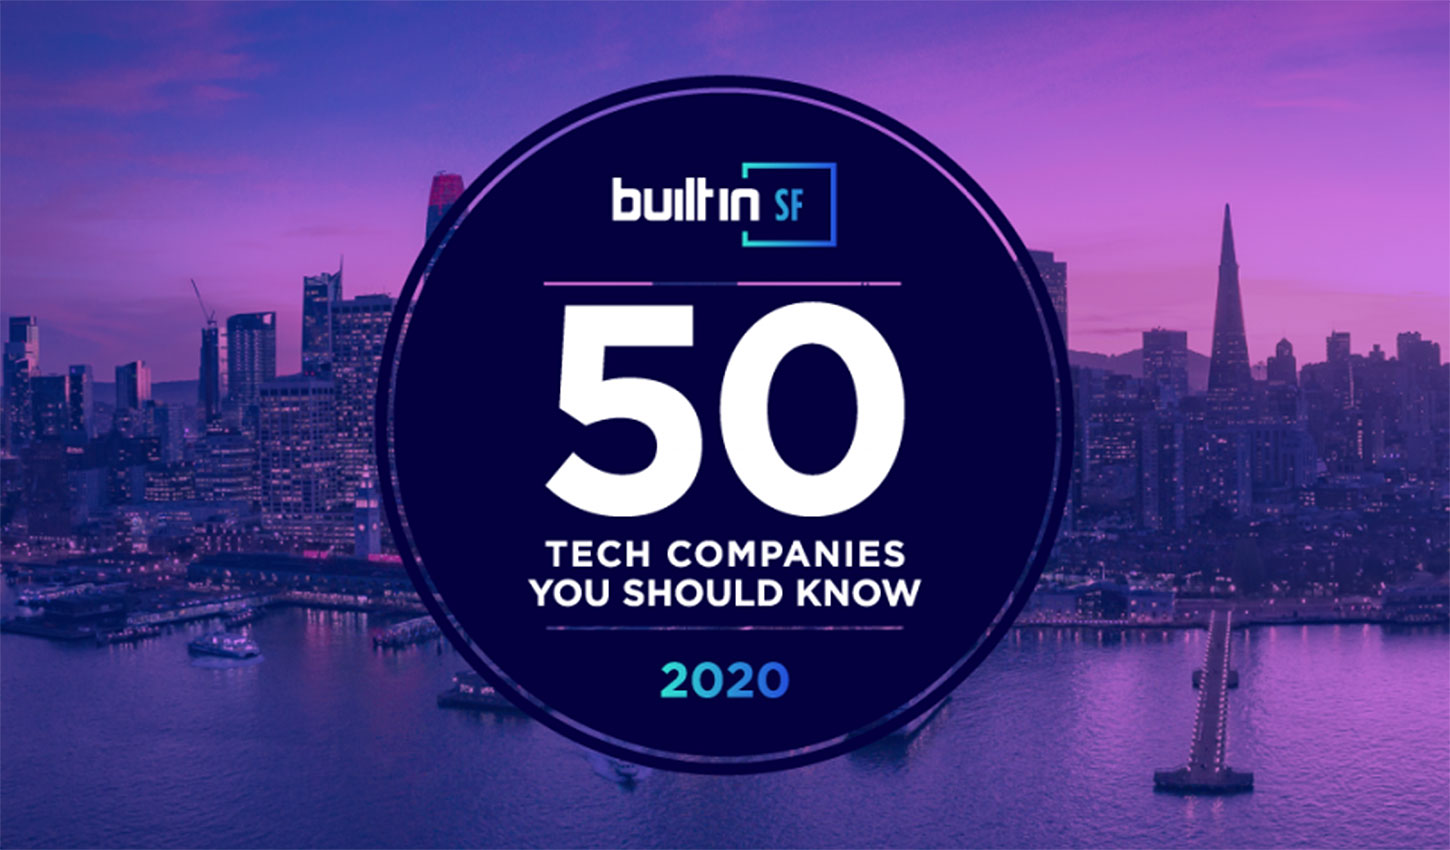 Sensor Tower Recognized As One Of The Top 50 Companies To Watch In 2020 By Built In Sf